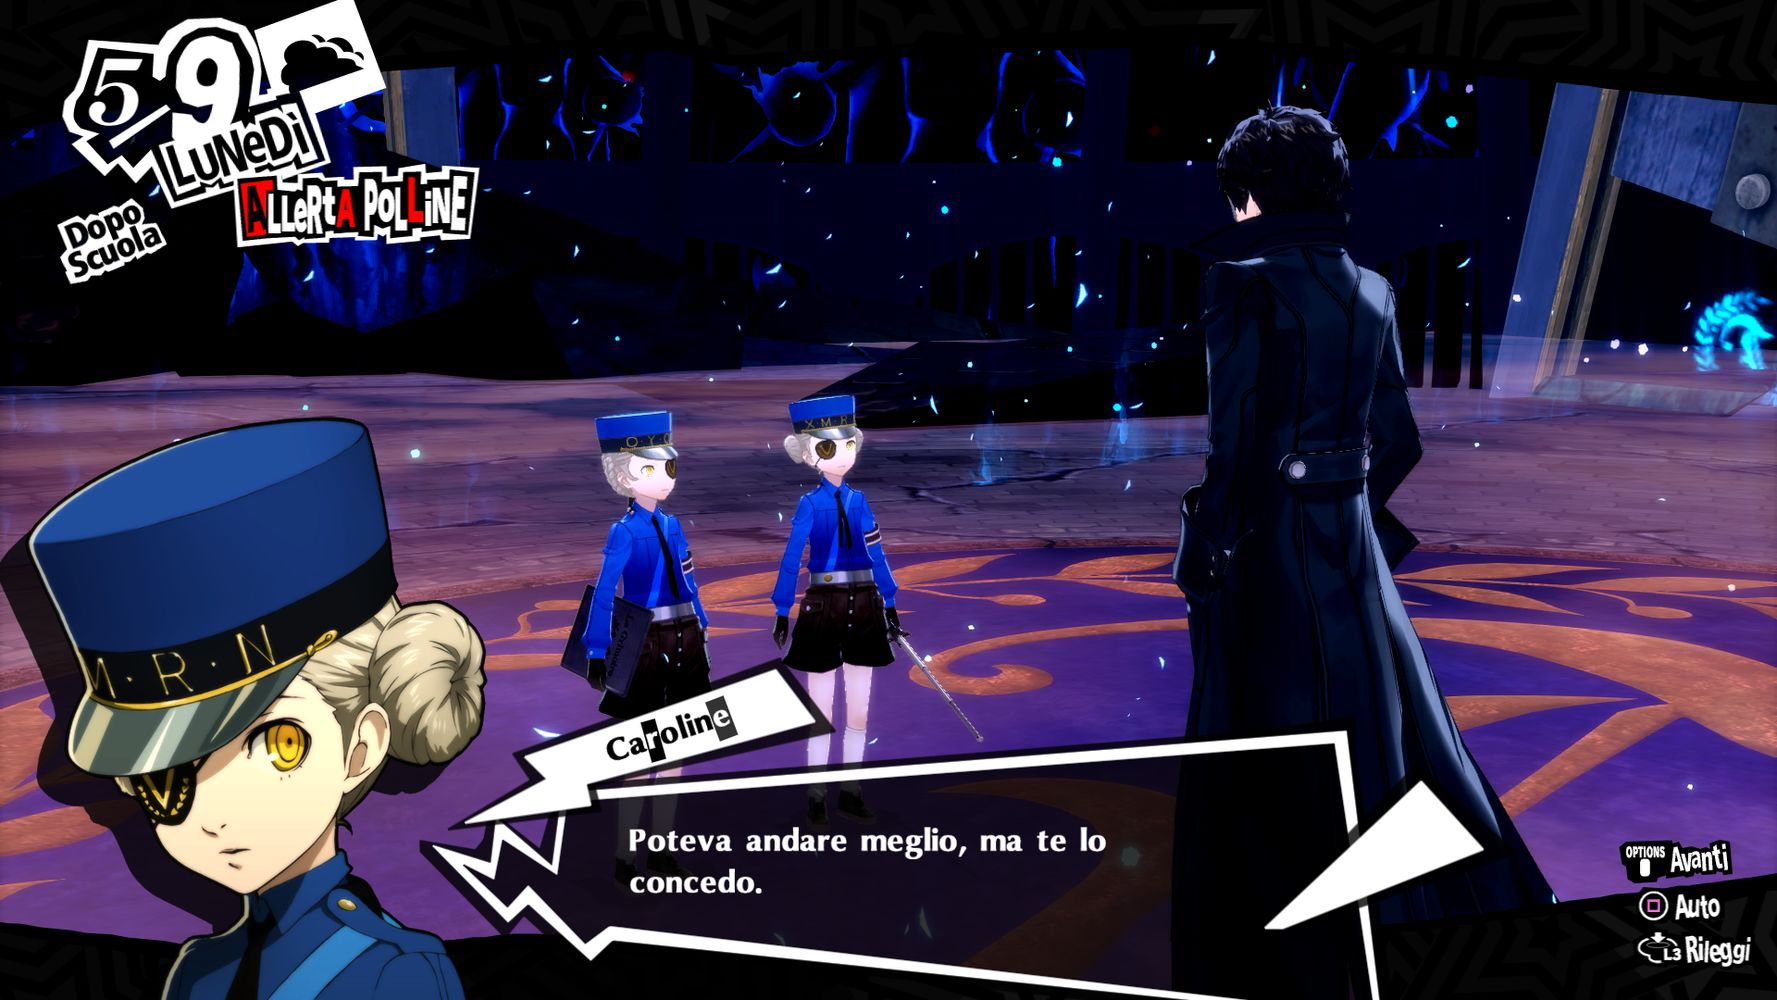 Velvet Room di Persona 5 Royal